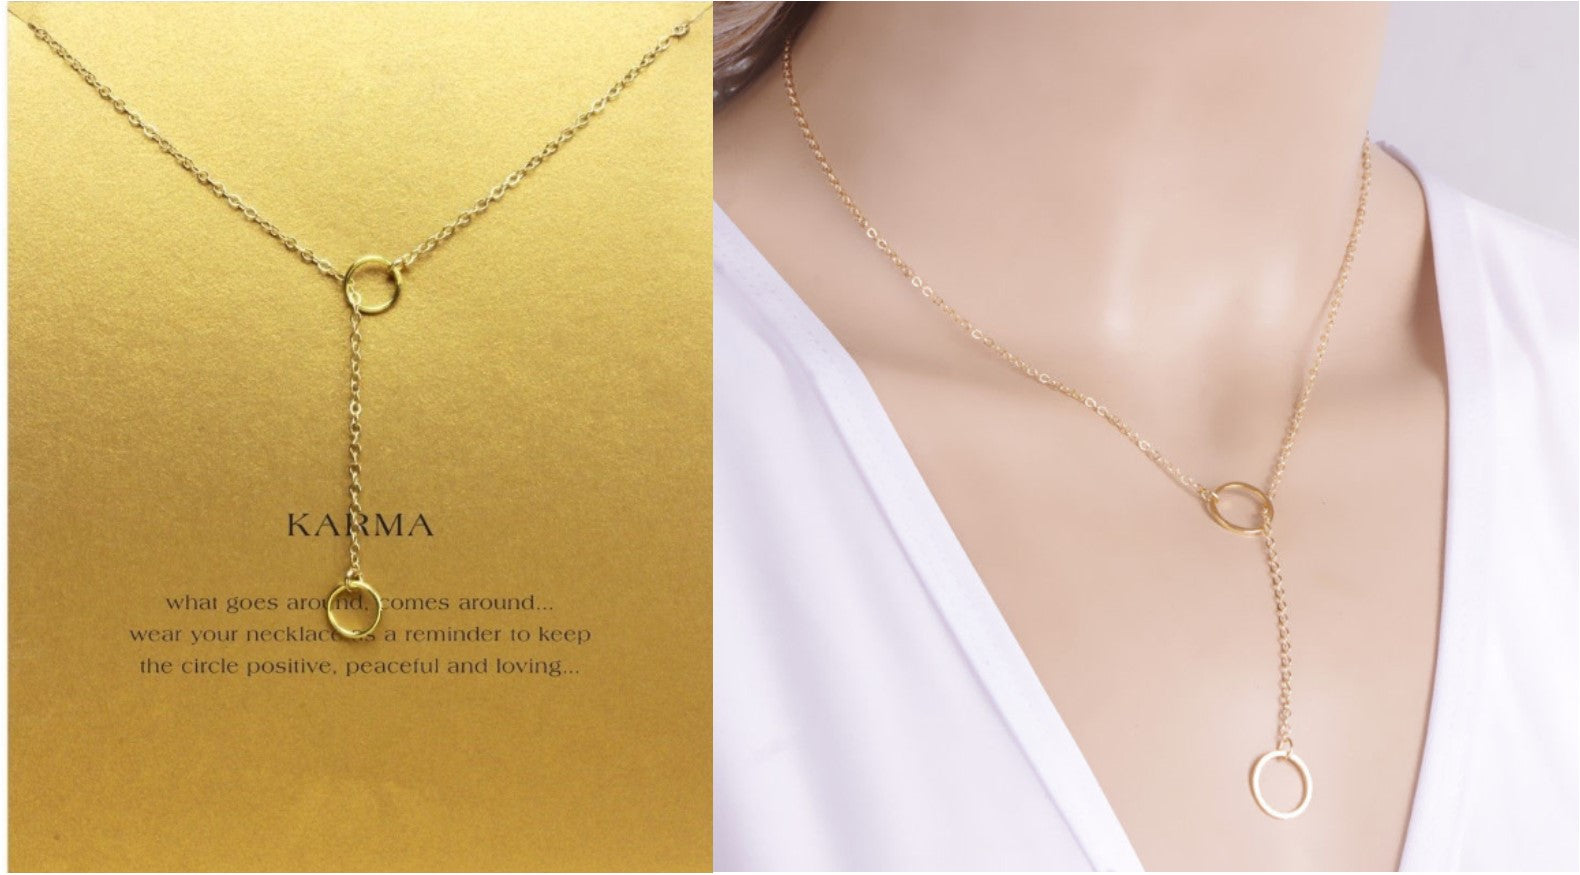 5758a6314f5479 Gold or Silver Necklace & Pendant Attached to Gift Card Envelope - MailDove